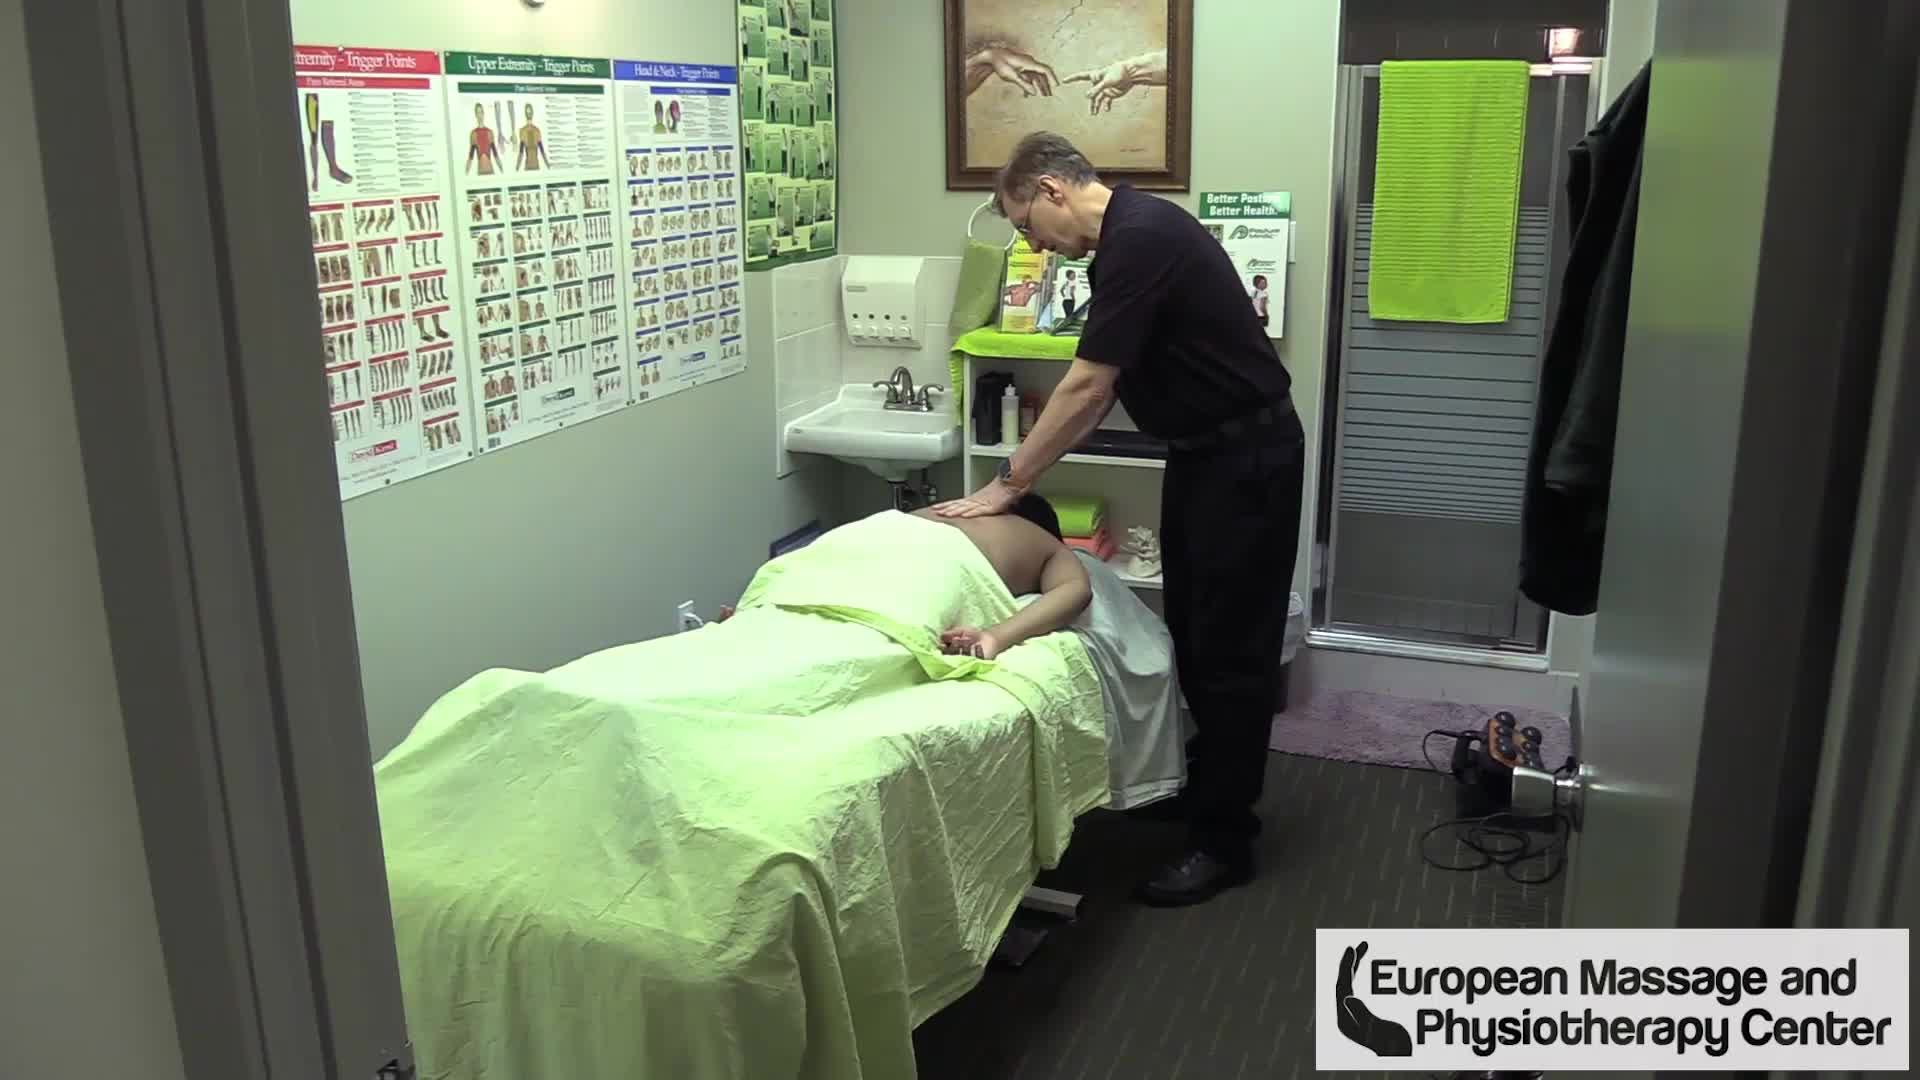 European Massage & Physiotherapy Center - Massage Therapists - 905-270-5553